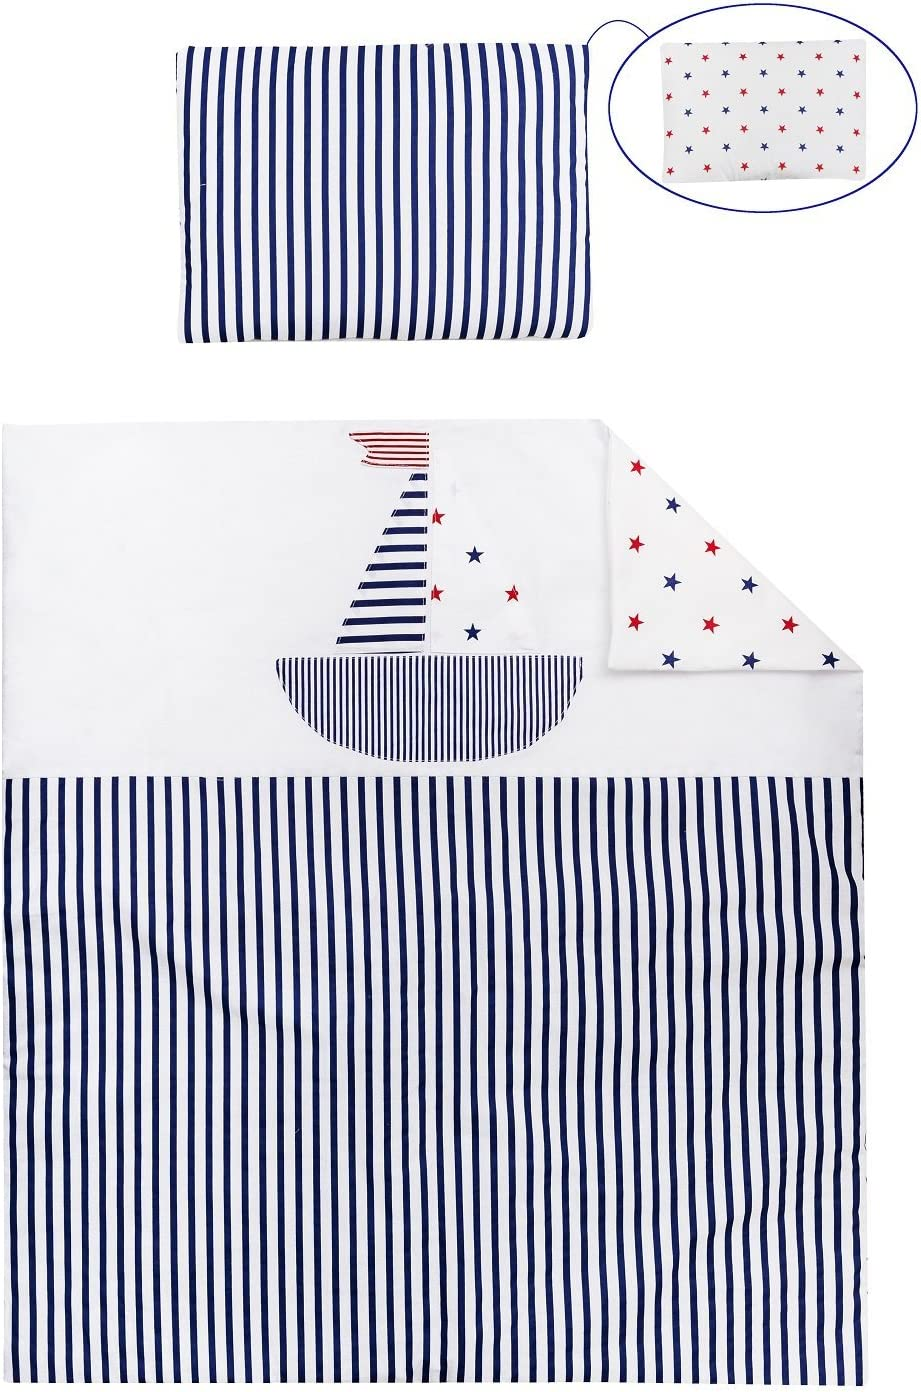 OekoTex Quilt /& Pillow for Moses Basket Vizaro Blue and White 70 x 80 cm, Pillow 25 x 30 cm C 100/% Luxury Cotton Made in EU for CO-Sleeping Safe for Babies